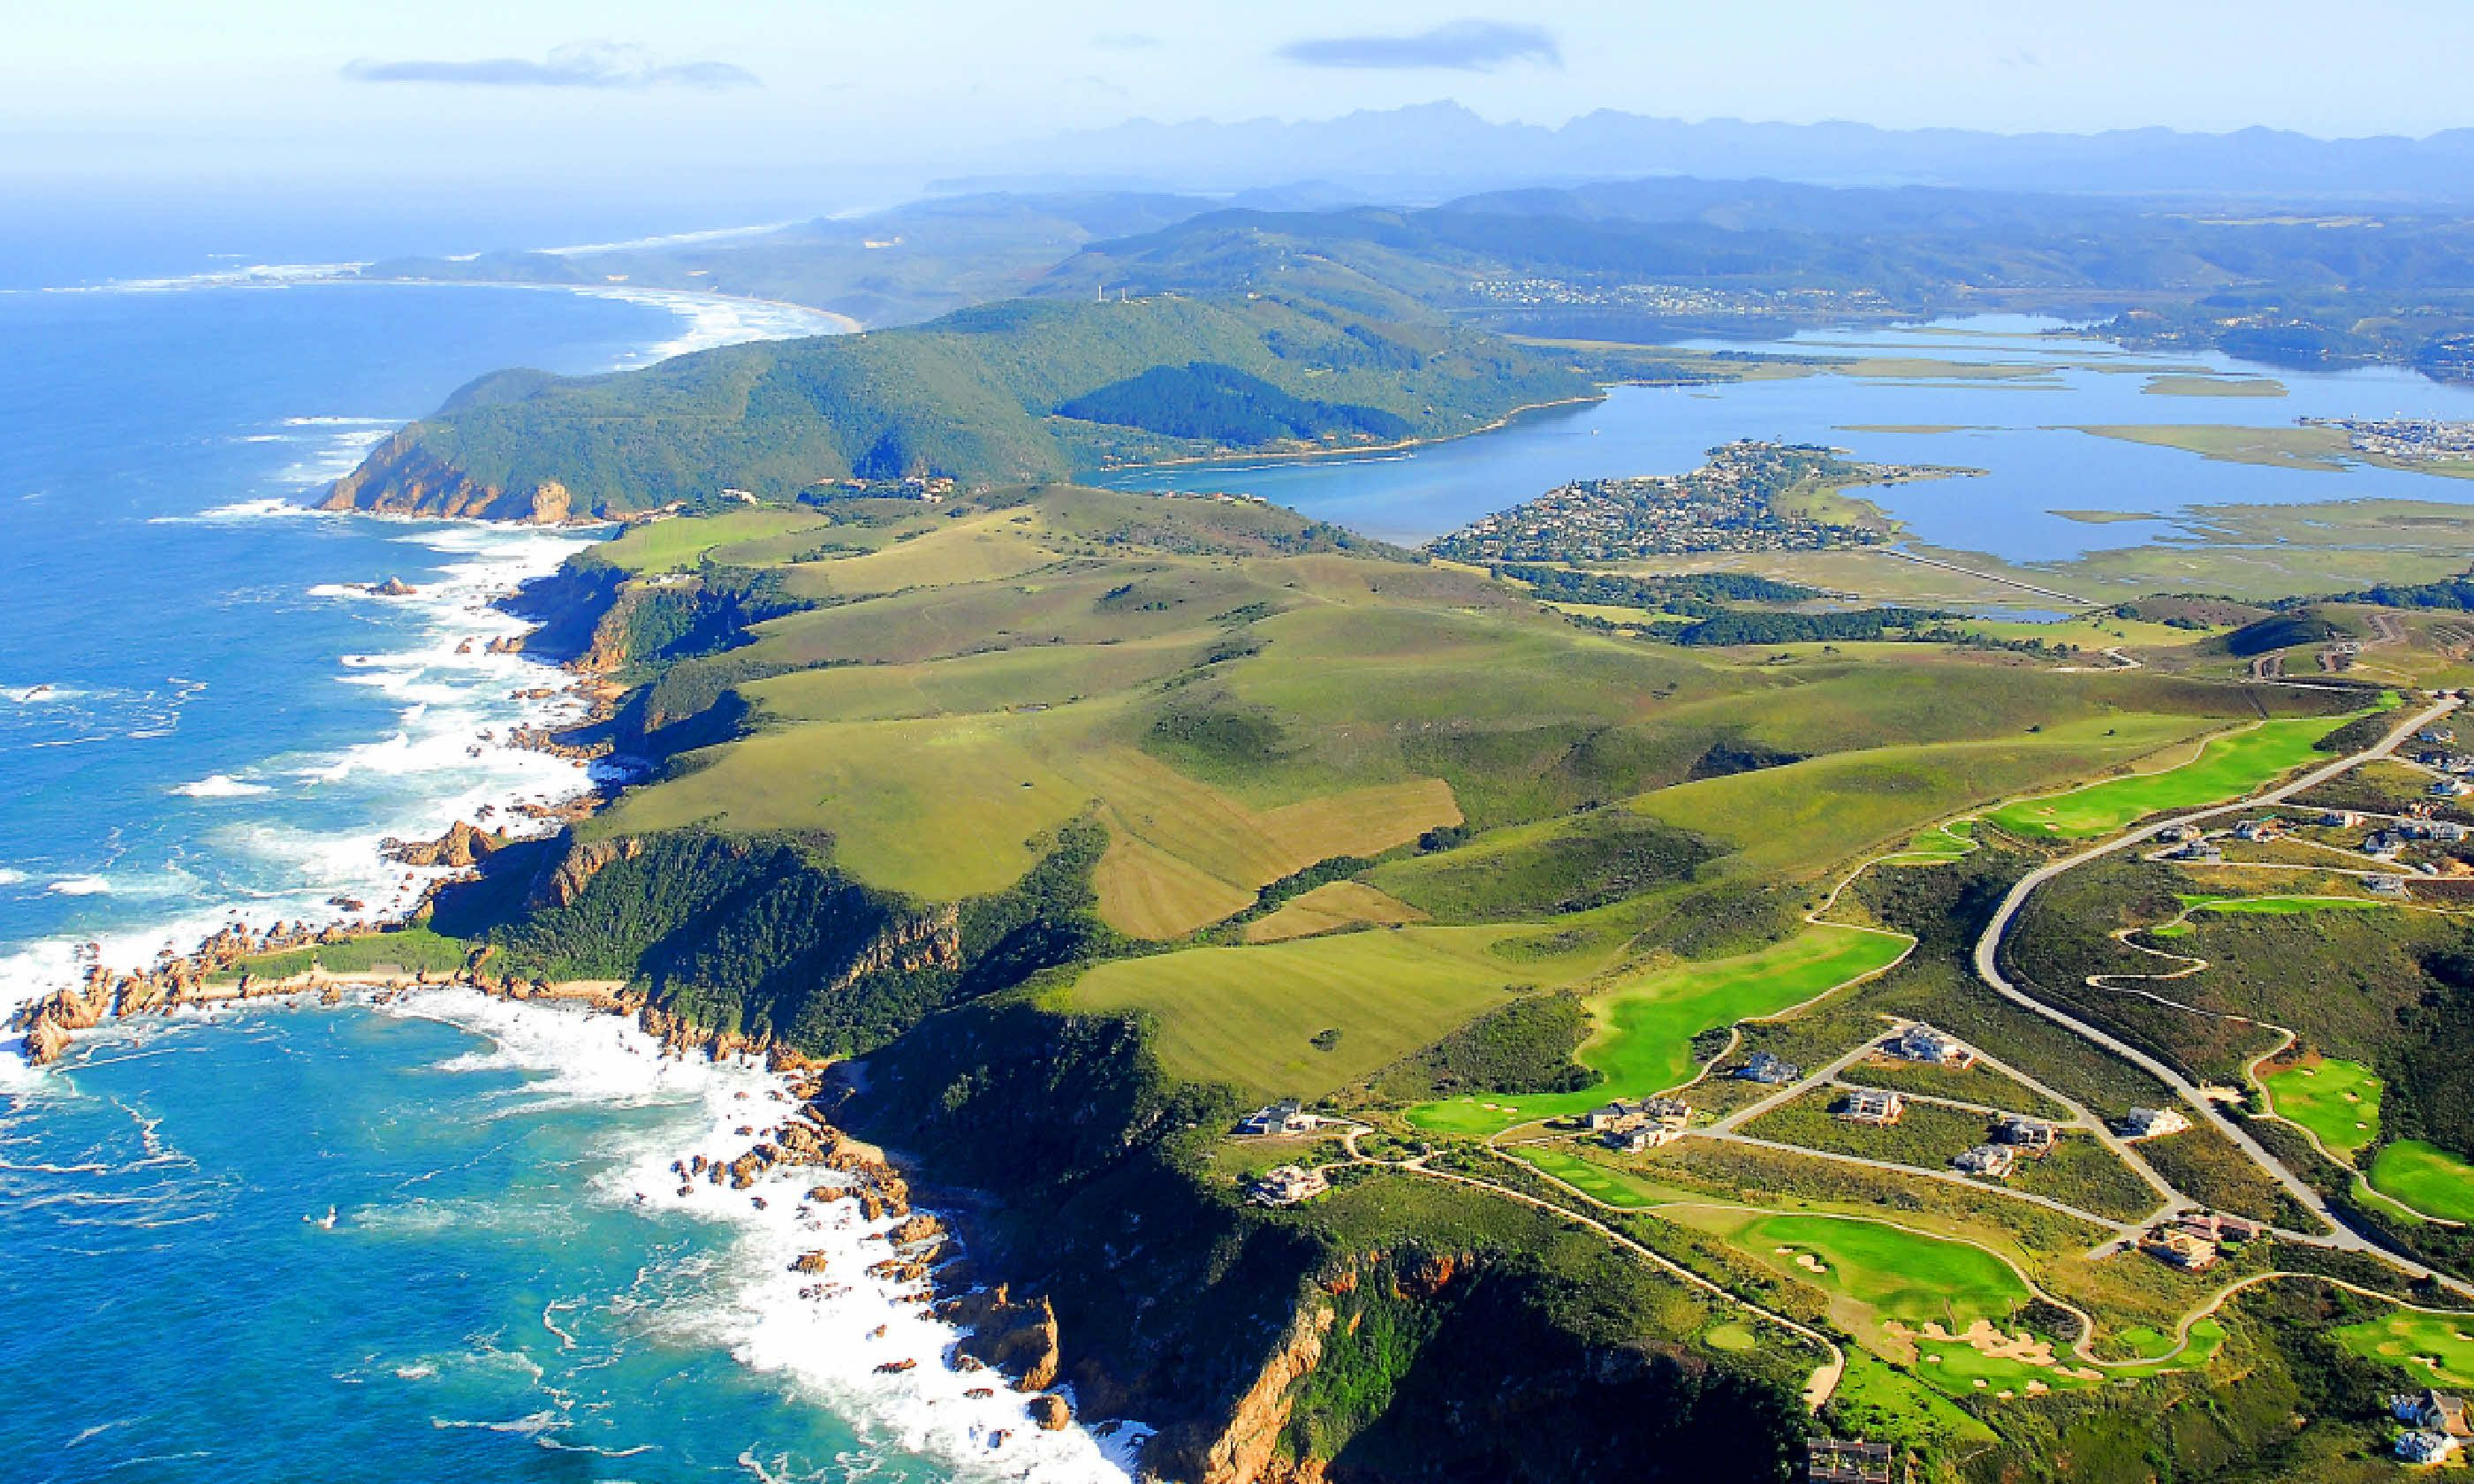 Aerial Shot of Knysna in the Garden Route, South Africa (Shutterstock)